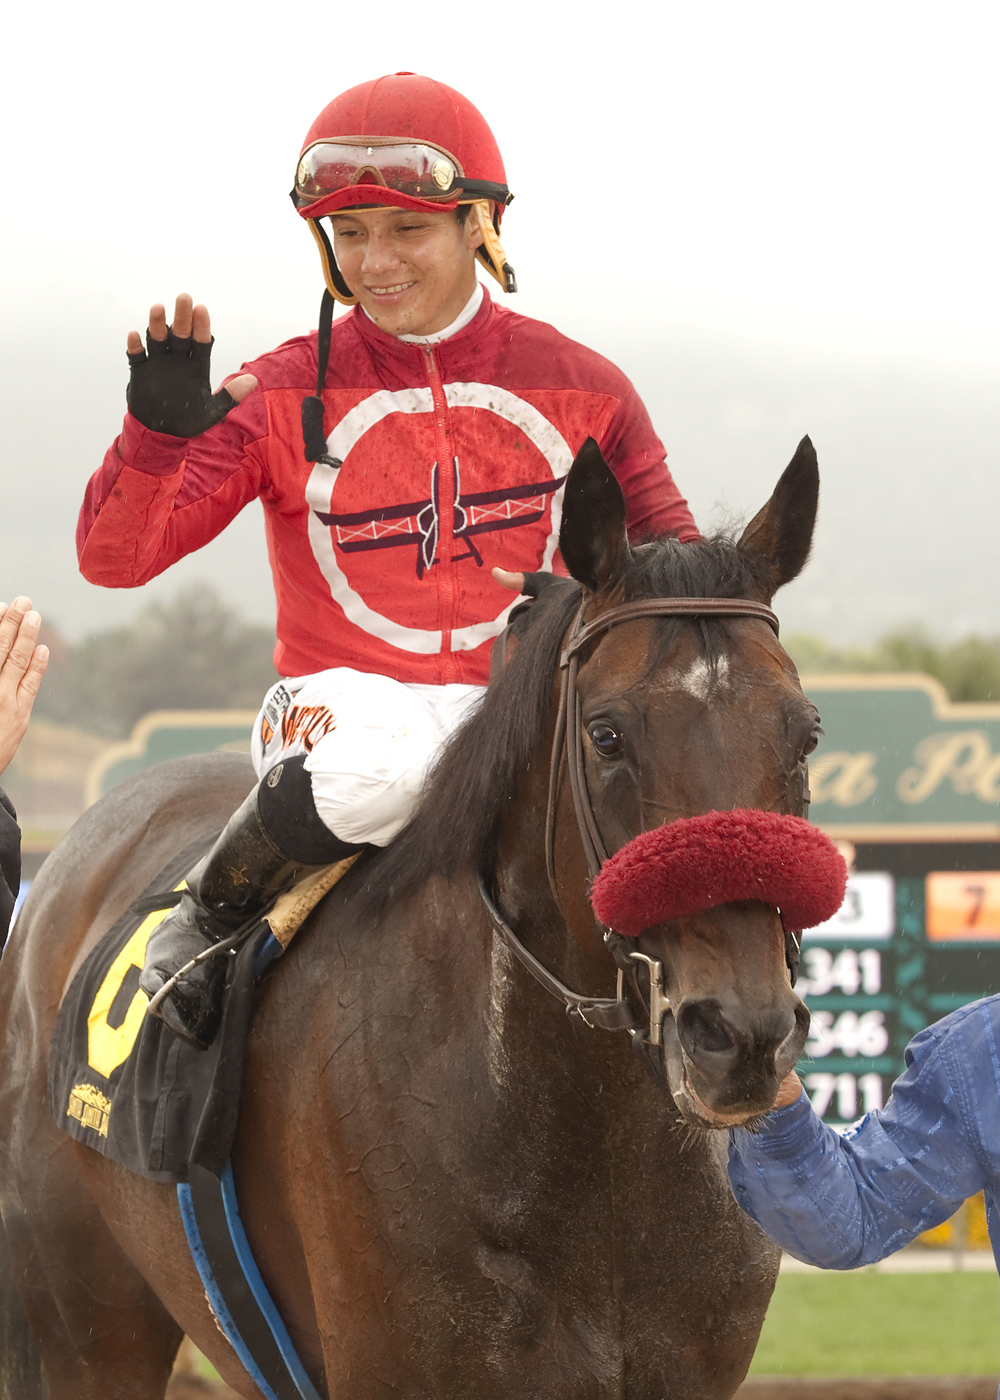 In this image provided by Benoit Photo, Si Sage and jockey Elvis Trujillo enter the Winner's Circle after their victory in the Grade III, $100,000 Last Tycoon Stakes horse race Saturday, April 25, 2015, at Santa Anita Park in Arcadia Calif. (Benoit Photo